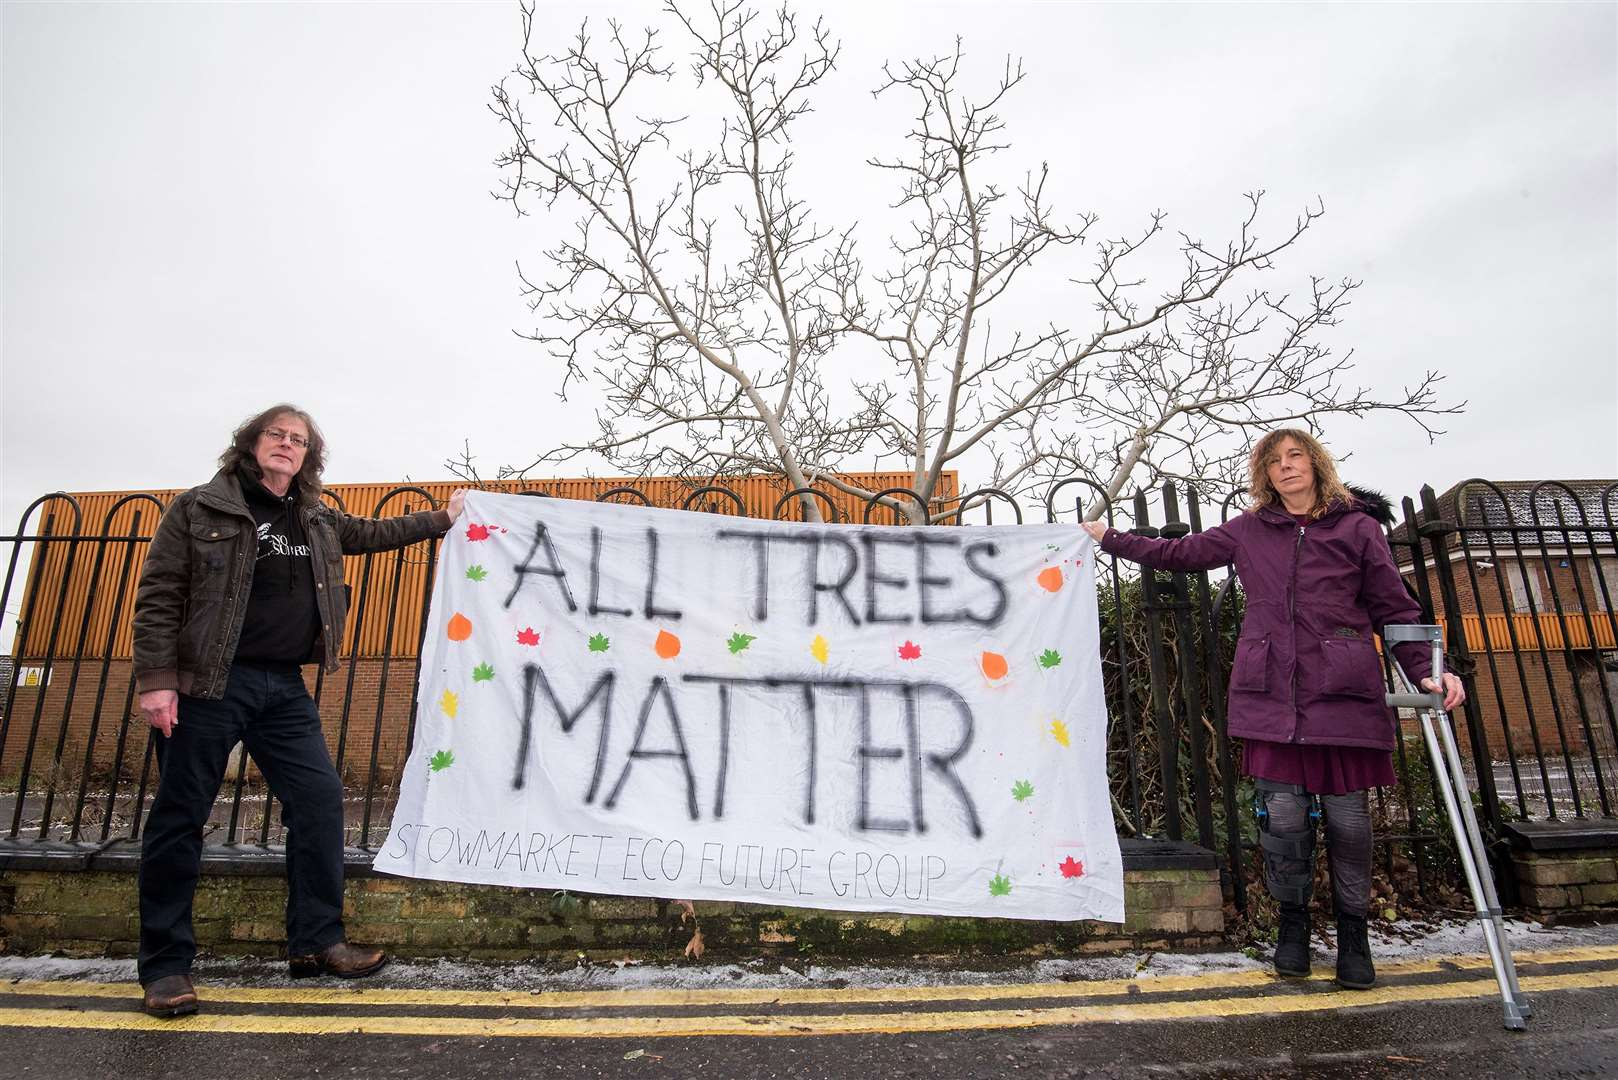 Simon Lee-Frampton and Sharri McGarry of Stowmarket Eco Future Group at the walnut trees. Picture by Mark Westley.